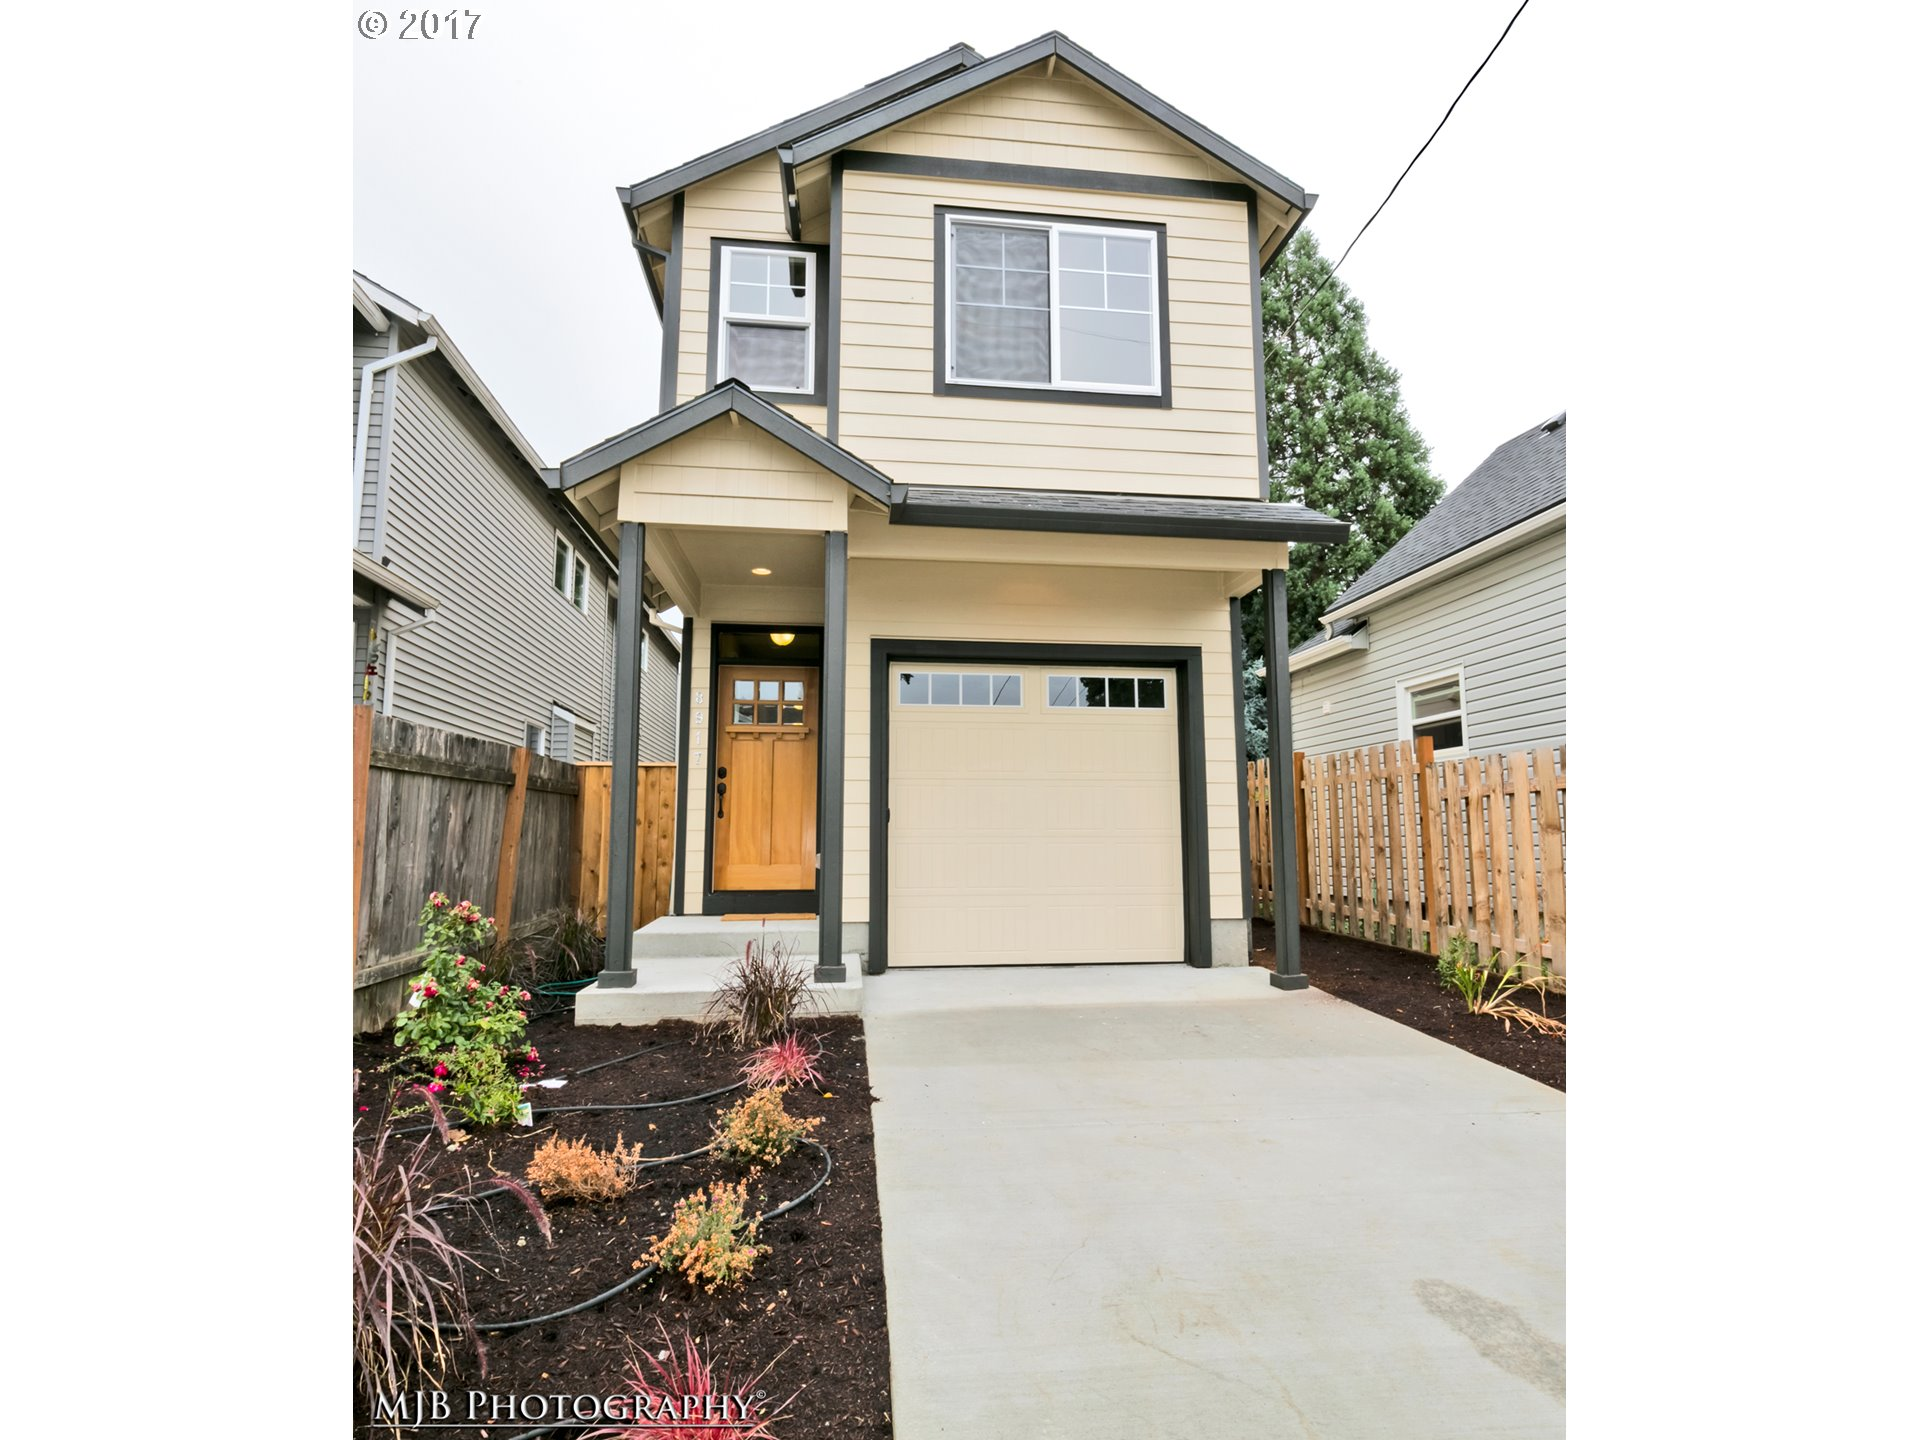 Beautiful new construction in pop Kenton near shopping, dining, transit & freeway access! Also near other neighbrhds:  Mississippi, Arbor Lodge & U of P! BikeScore 80! Quality finishes, built by a long time, local builder w/3 bdrm, 2 1/2 bth w/attached garage, wood flrs on main,  open kitch w/SS apps, forced air heating, hi-ceilings, & much more! Completed & move-in-ready!